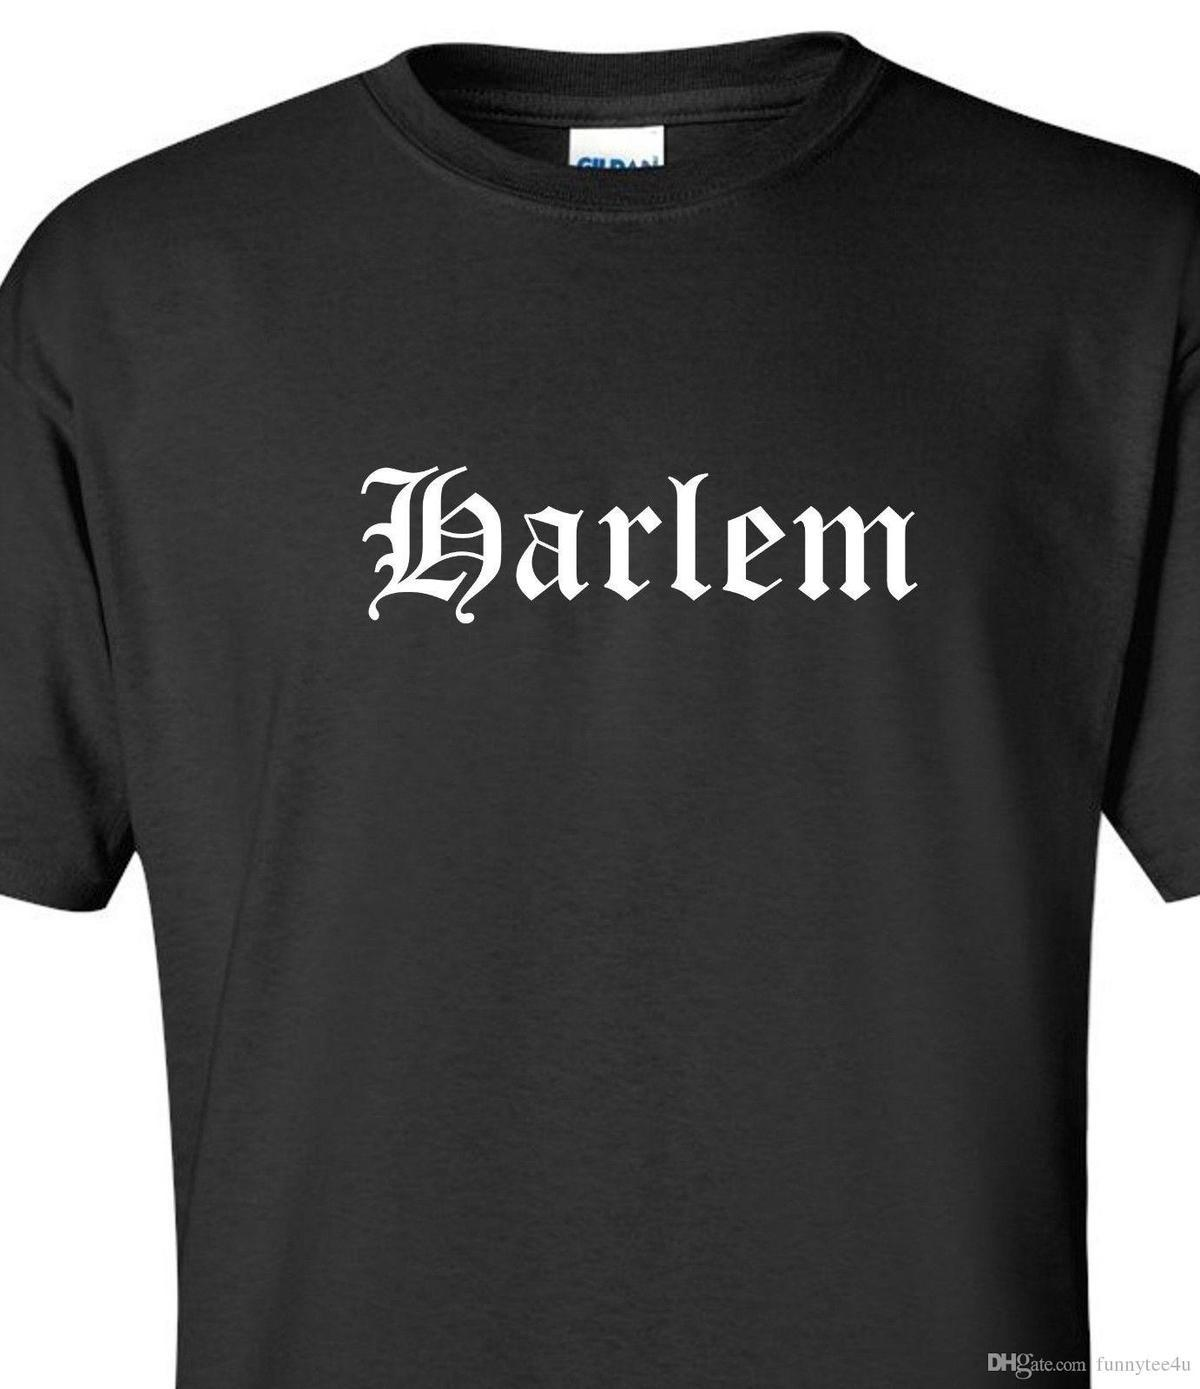 Harlem T Shirt Nyc New York City West East North Hip Hop Urban Tee Shirt S  2Xl T Shirt Short Sleeve Custom Brand Clothing Popular Tshirts Designs T  Shirt S ... e34f73f9155